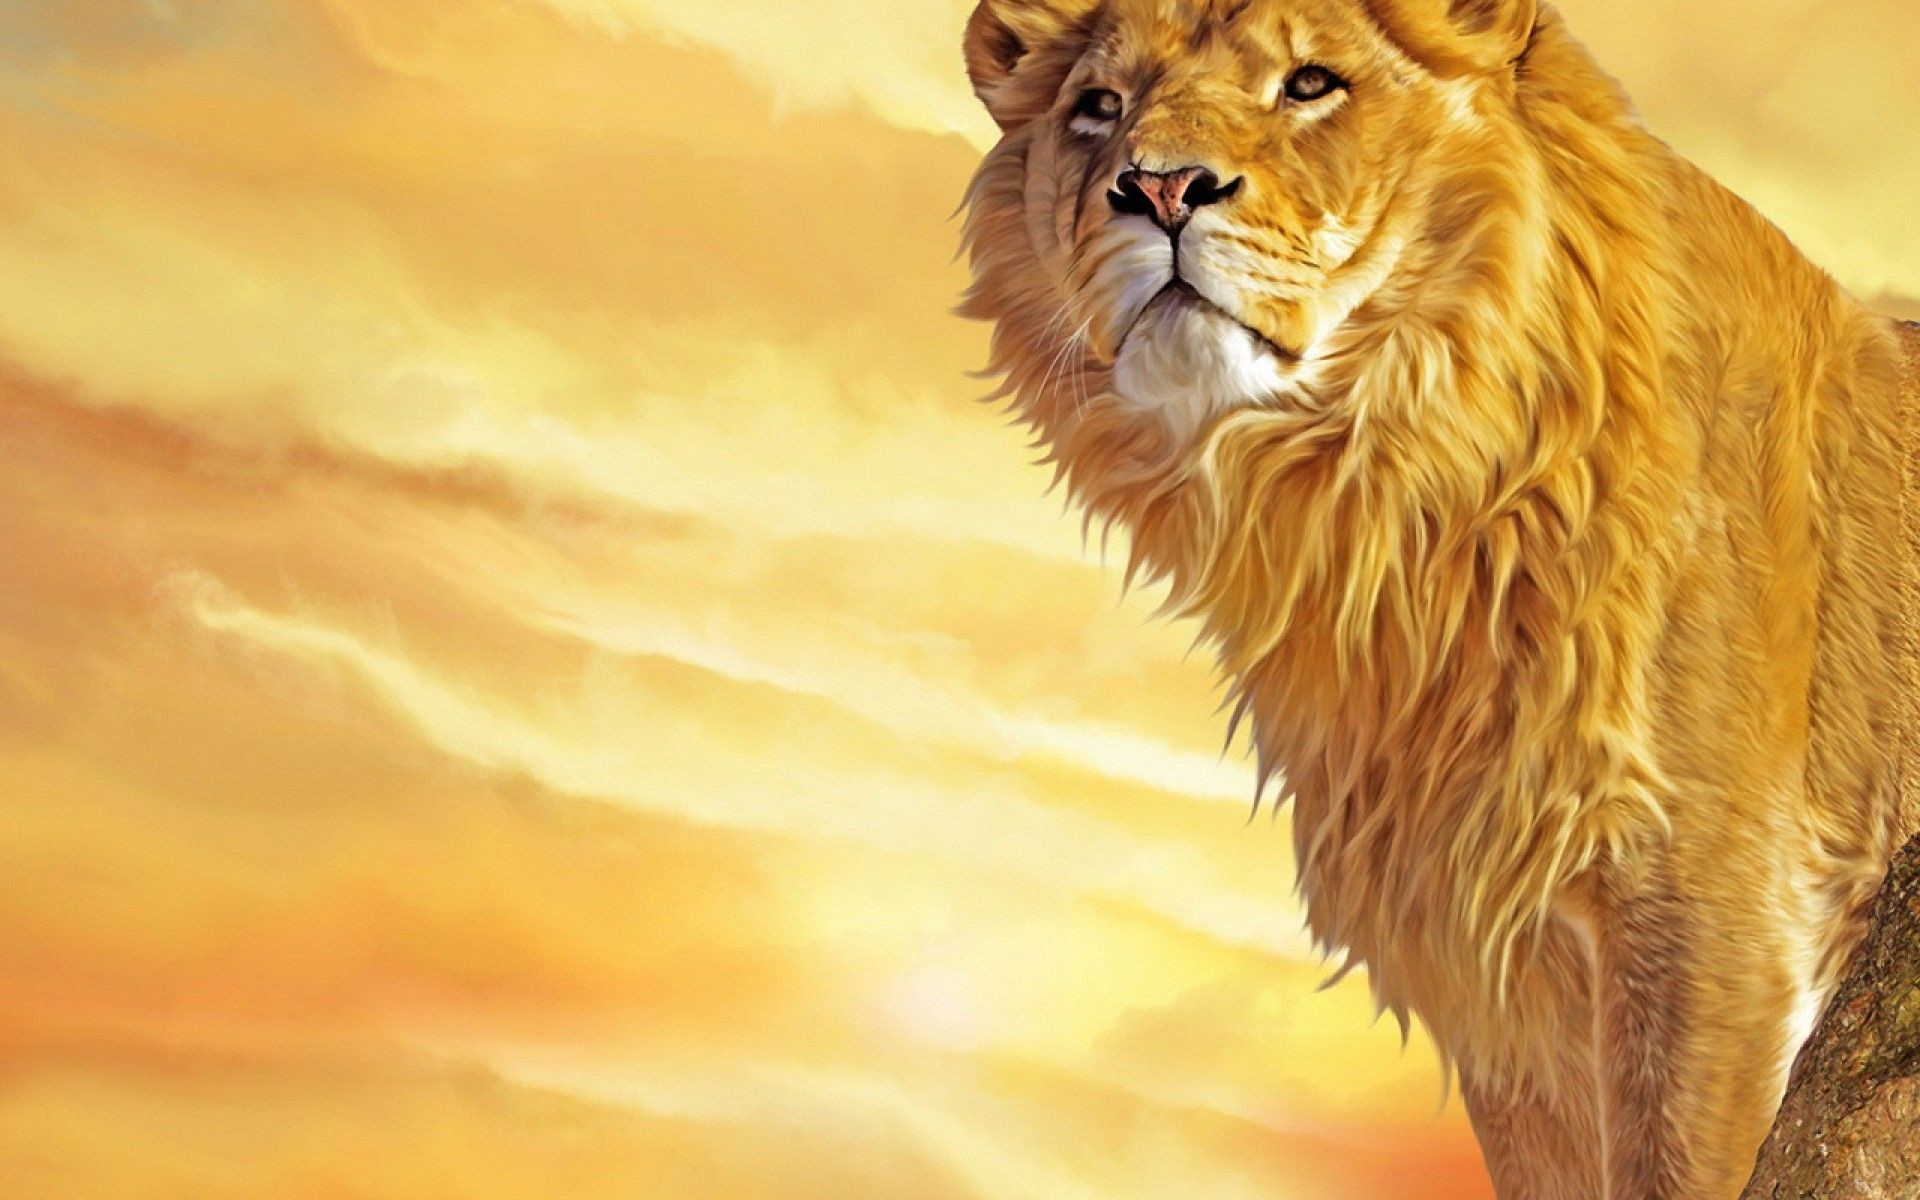 Angry Lion Wallpaper   HD Animals   Pinterest   Nature wallpaper, Lions and  Wallpaper